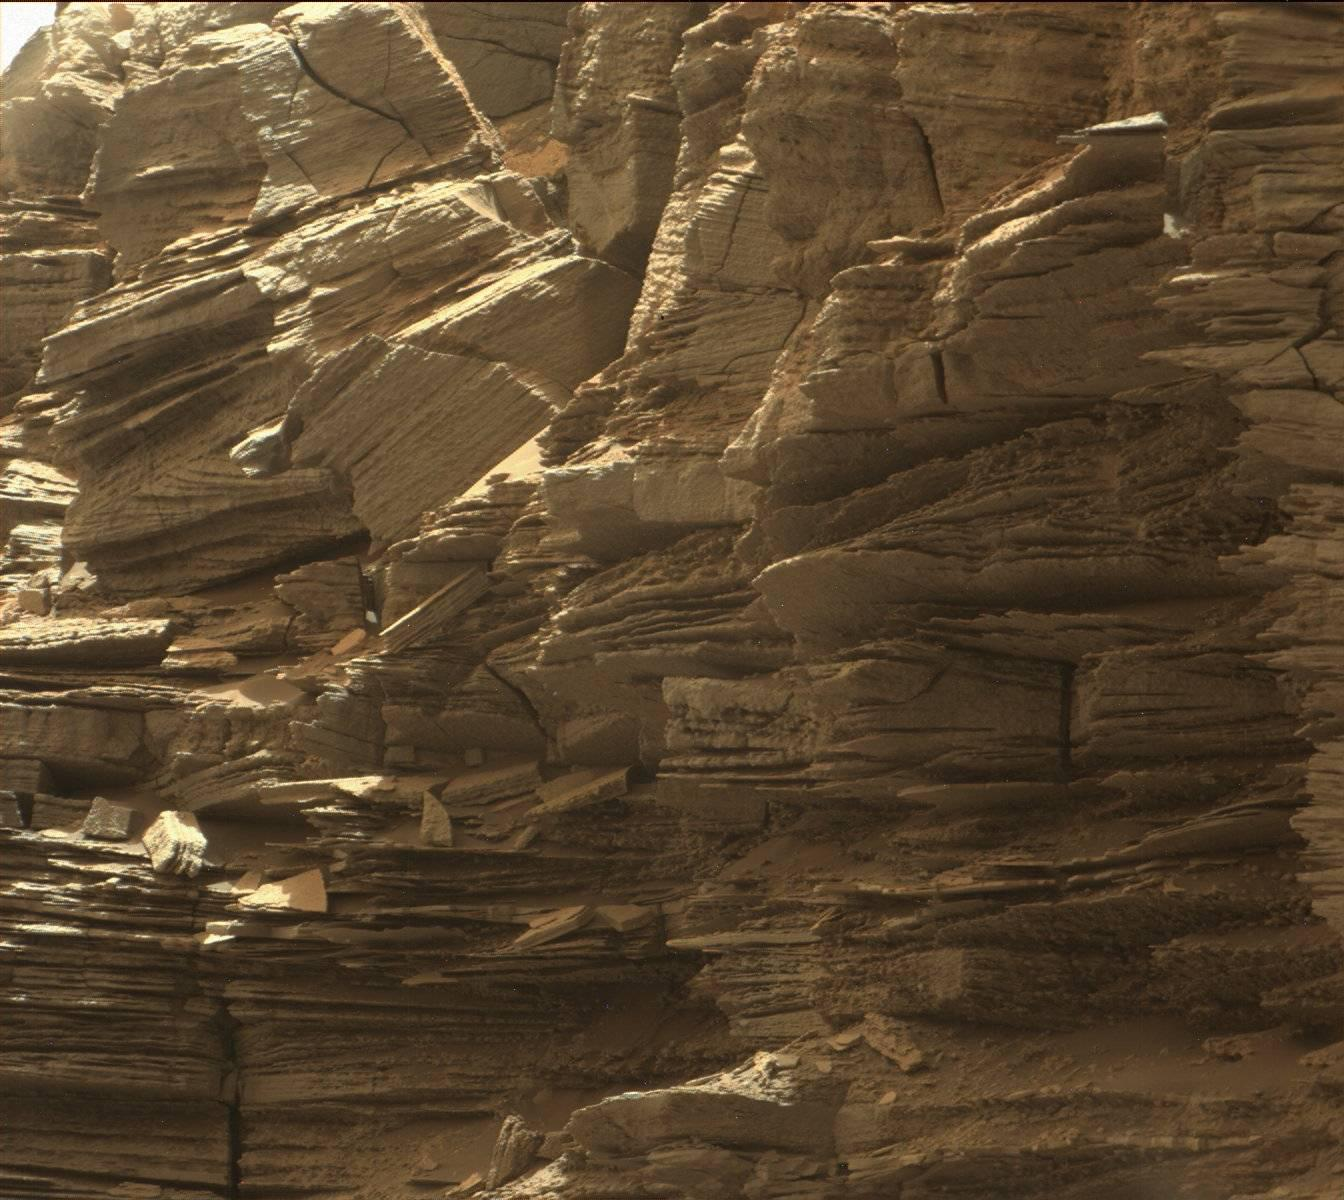 rocks on earth from mars - photo #36